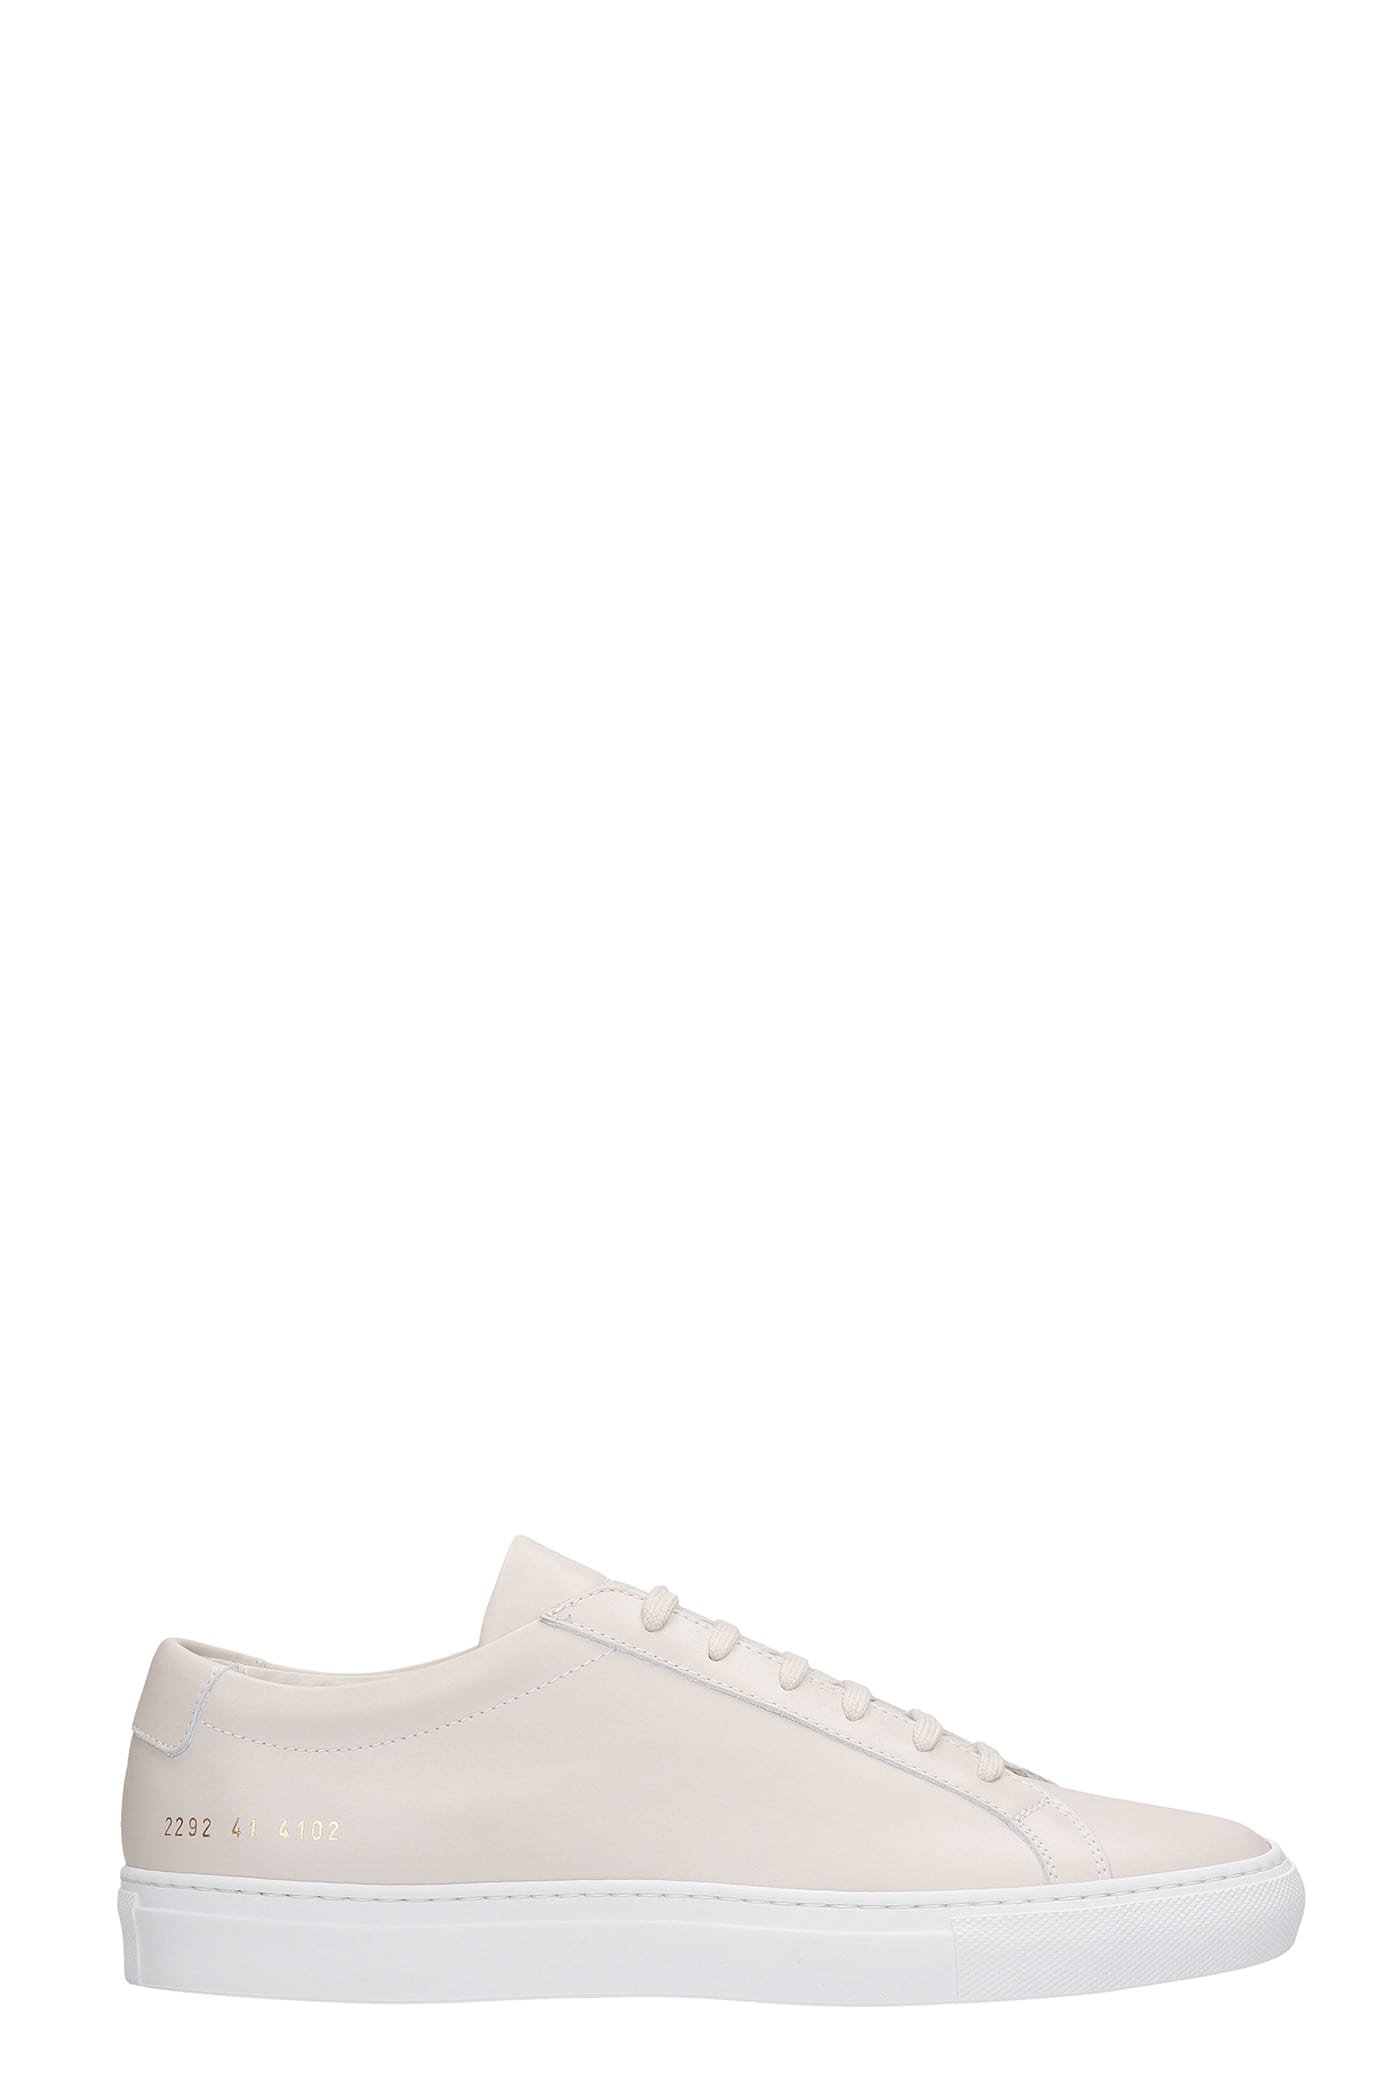 Common Projects Sneakers ACHILLE SNEAKERS IN BEIGE LEATHER